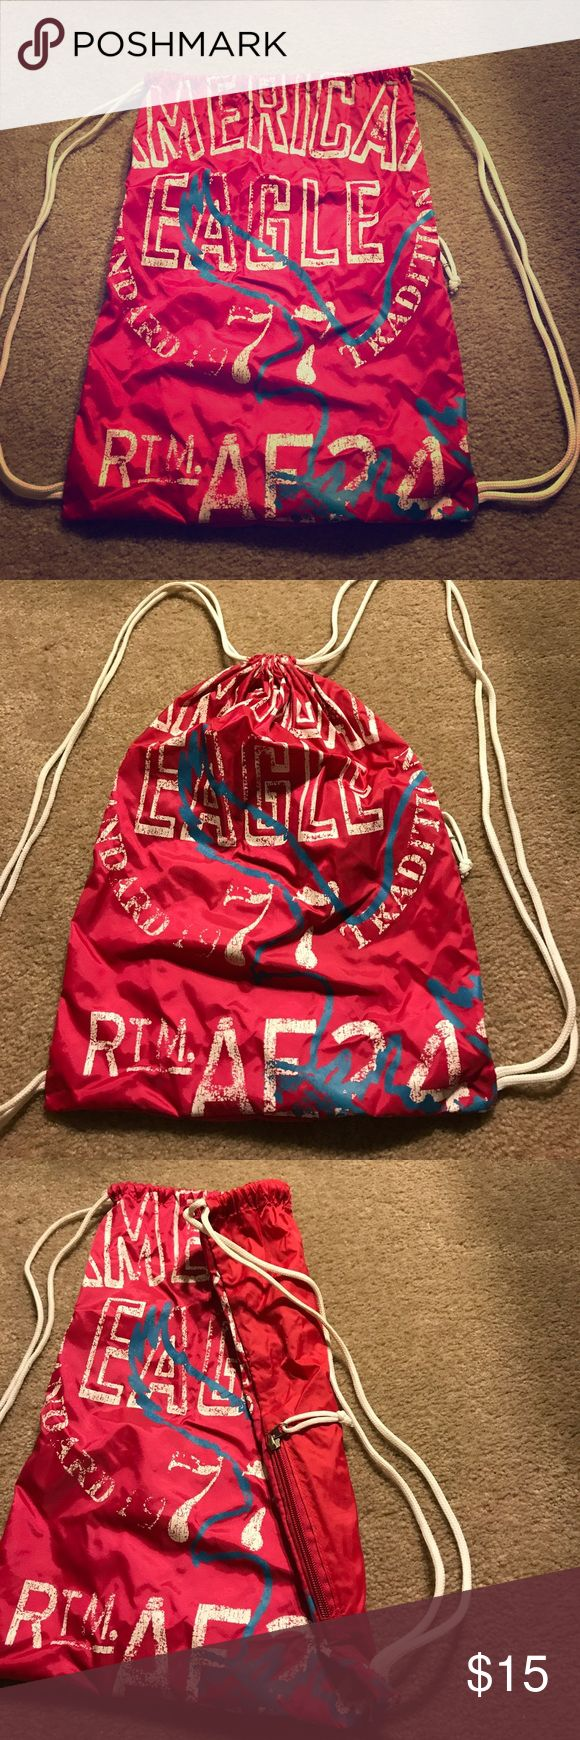 American Eagle spring break drawstring bag. AE sling backpack; used slightly and in good condition. American Eagle Outfitters Bags Backpacks